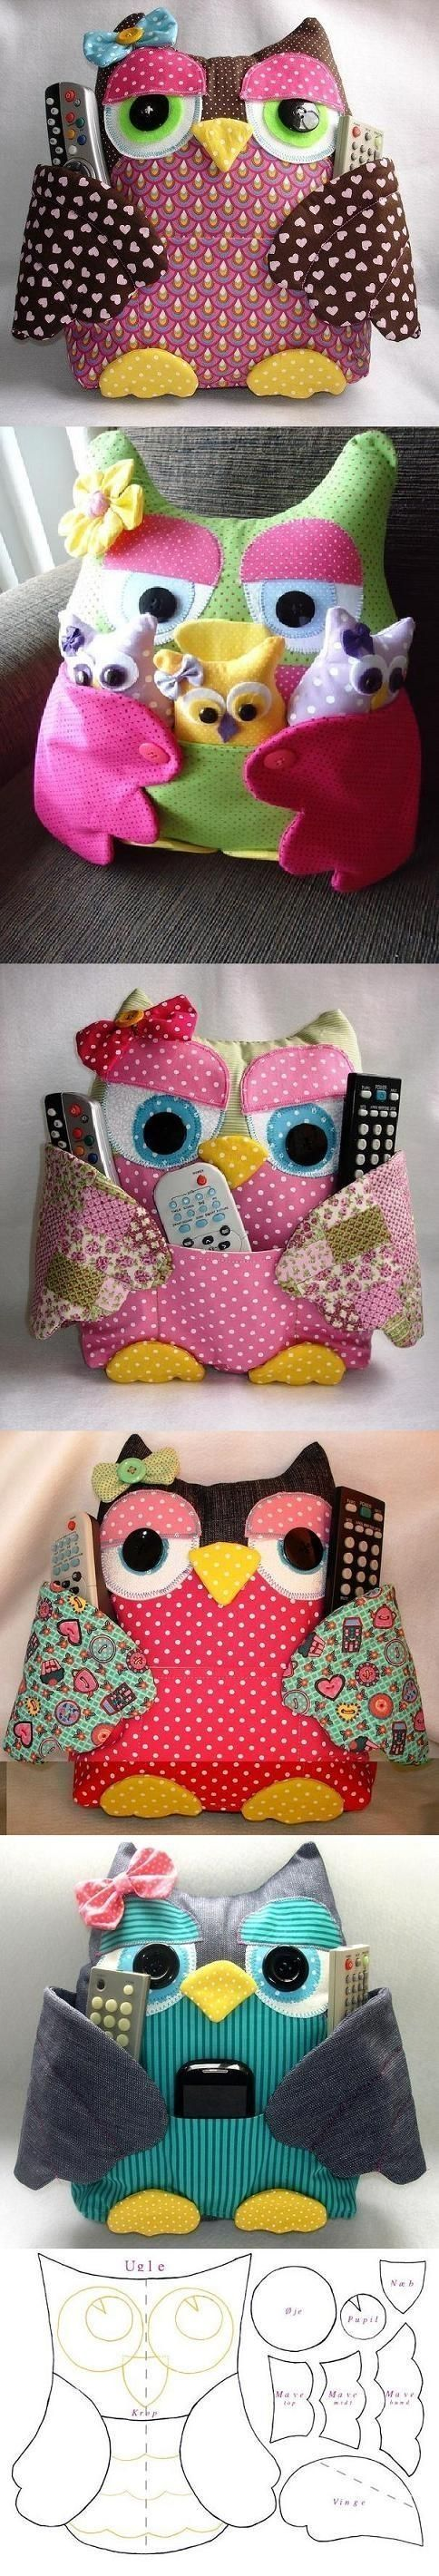 owl remote control holder sewing pattern video tutorial | Remote ...